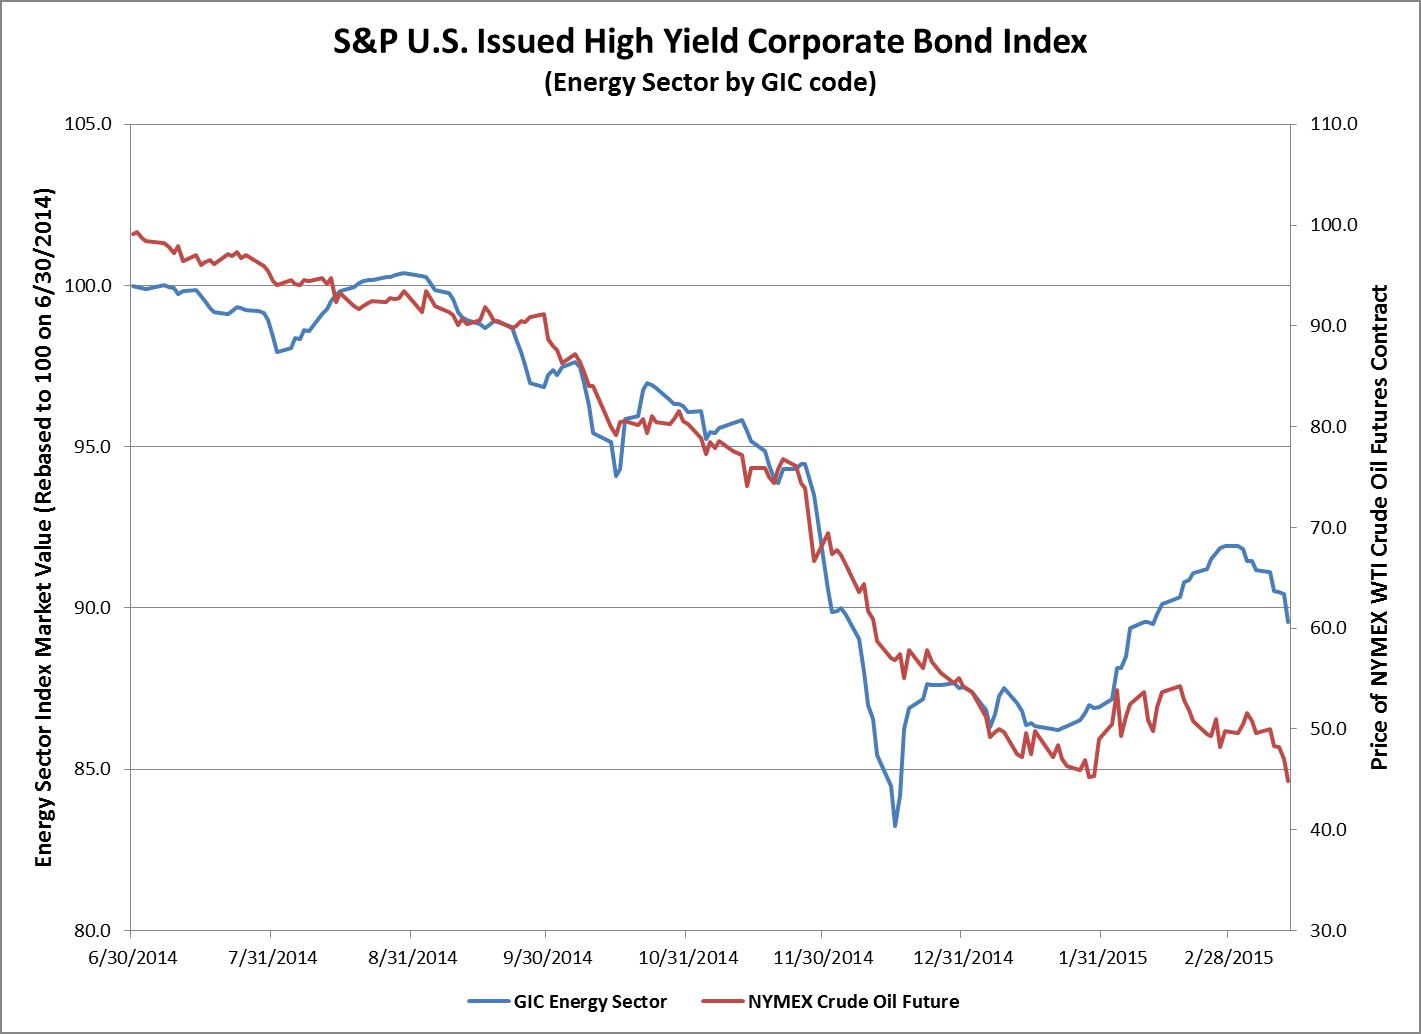 S&P U.S. Issued High Yield Corporate Bond Index (Energy Sector by GIC code)